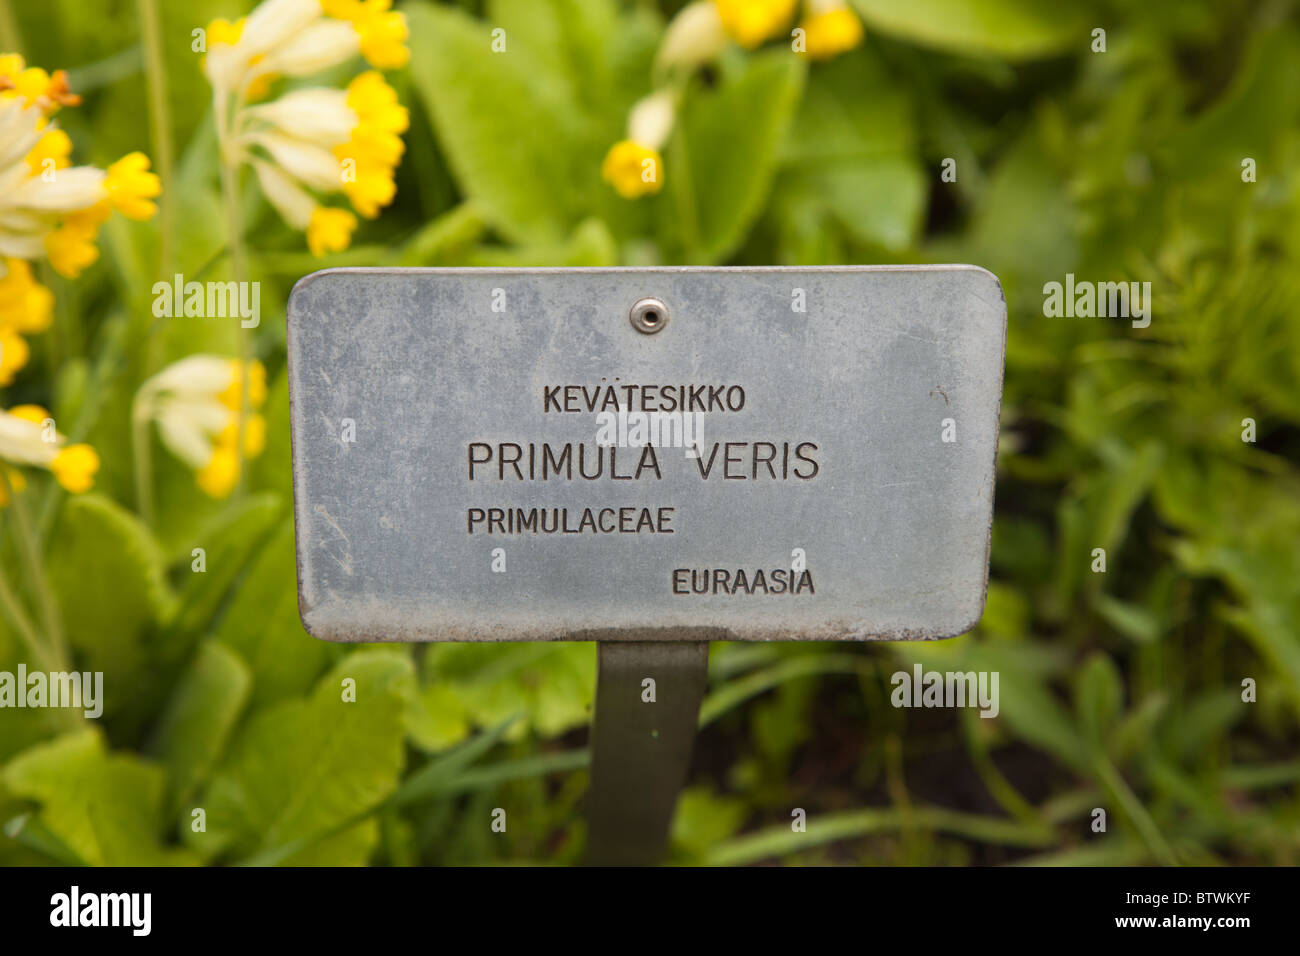 Outdoorioutdoorimg Tag: Name Tag At Botanical Garden Stock Photo, Royalty Free